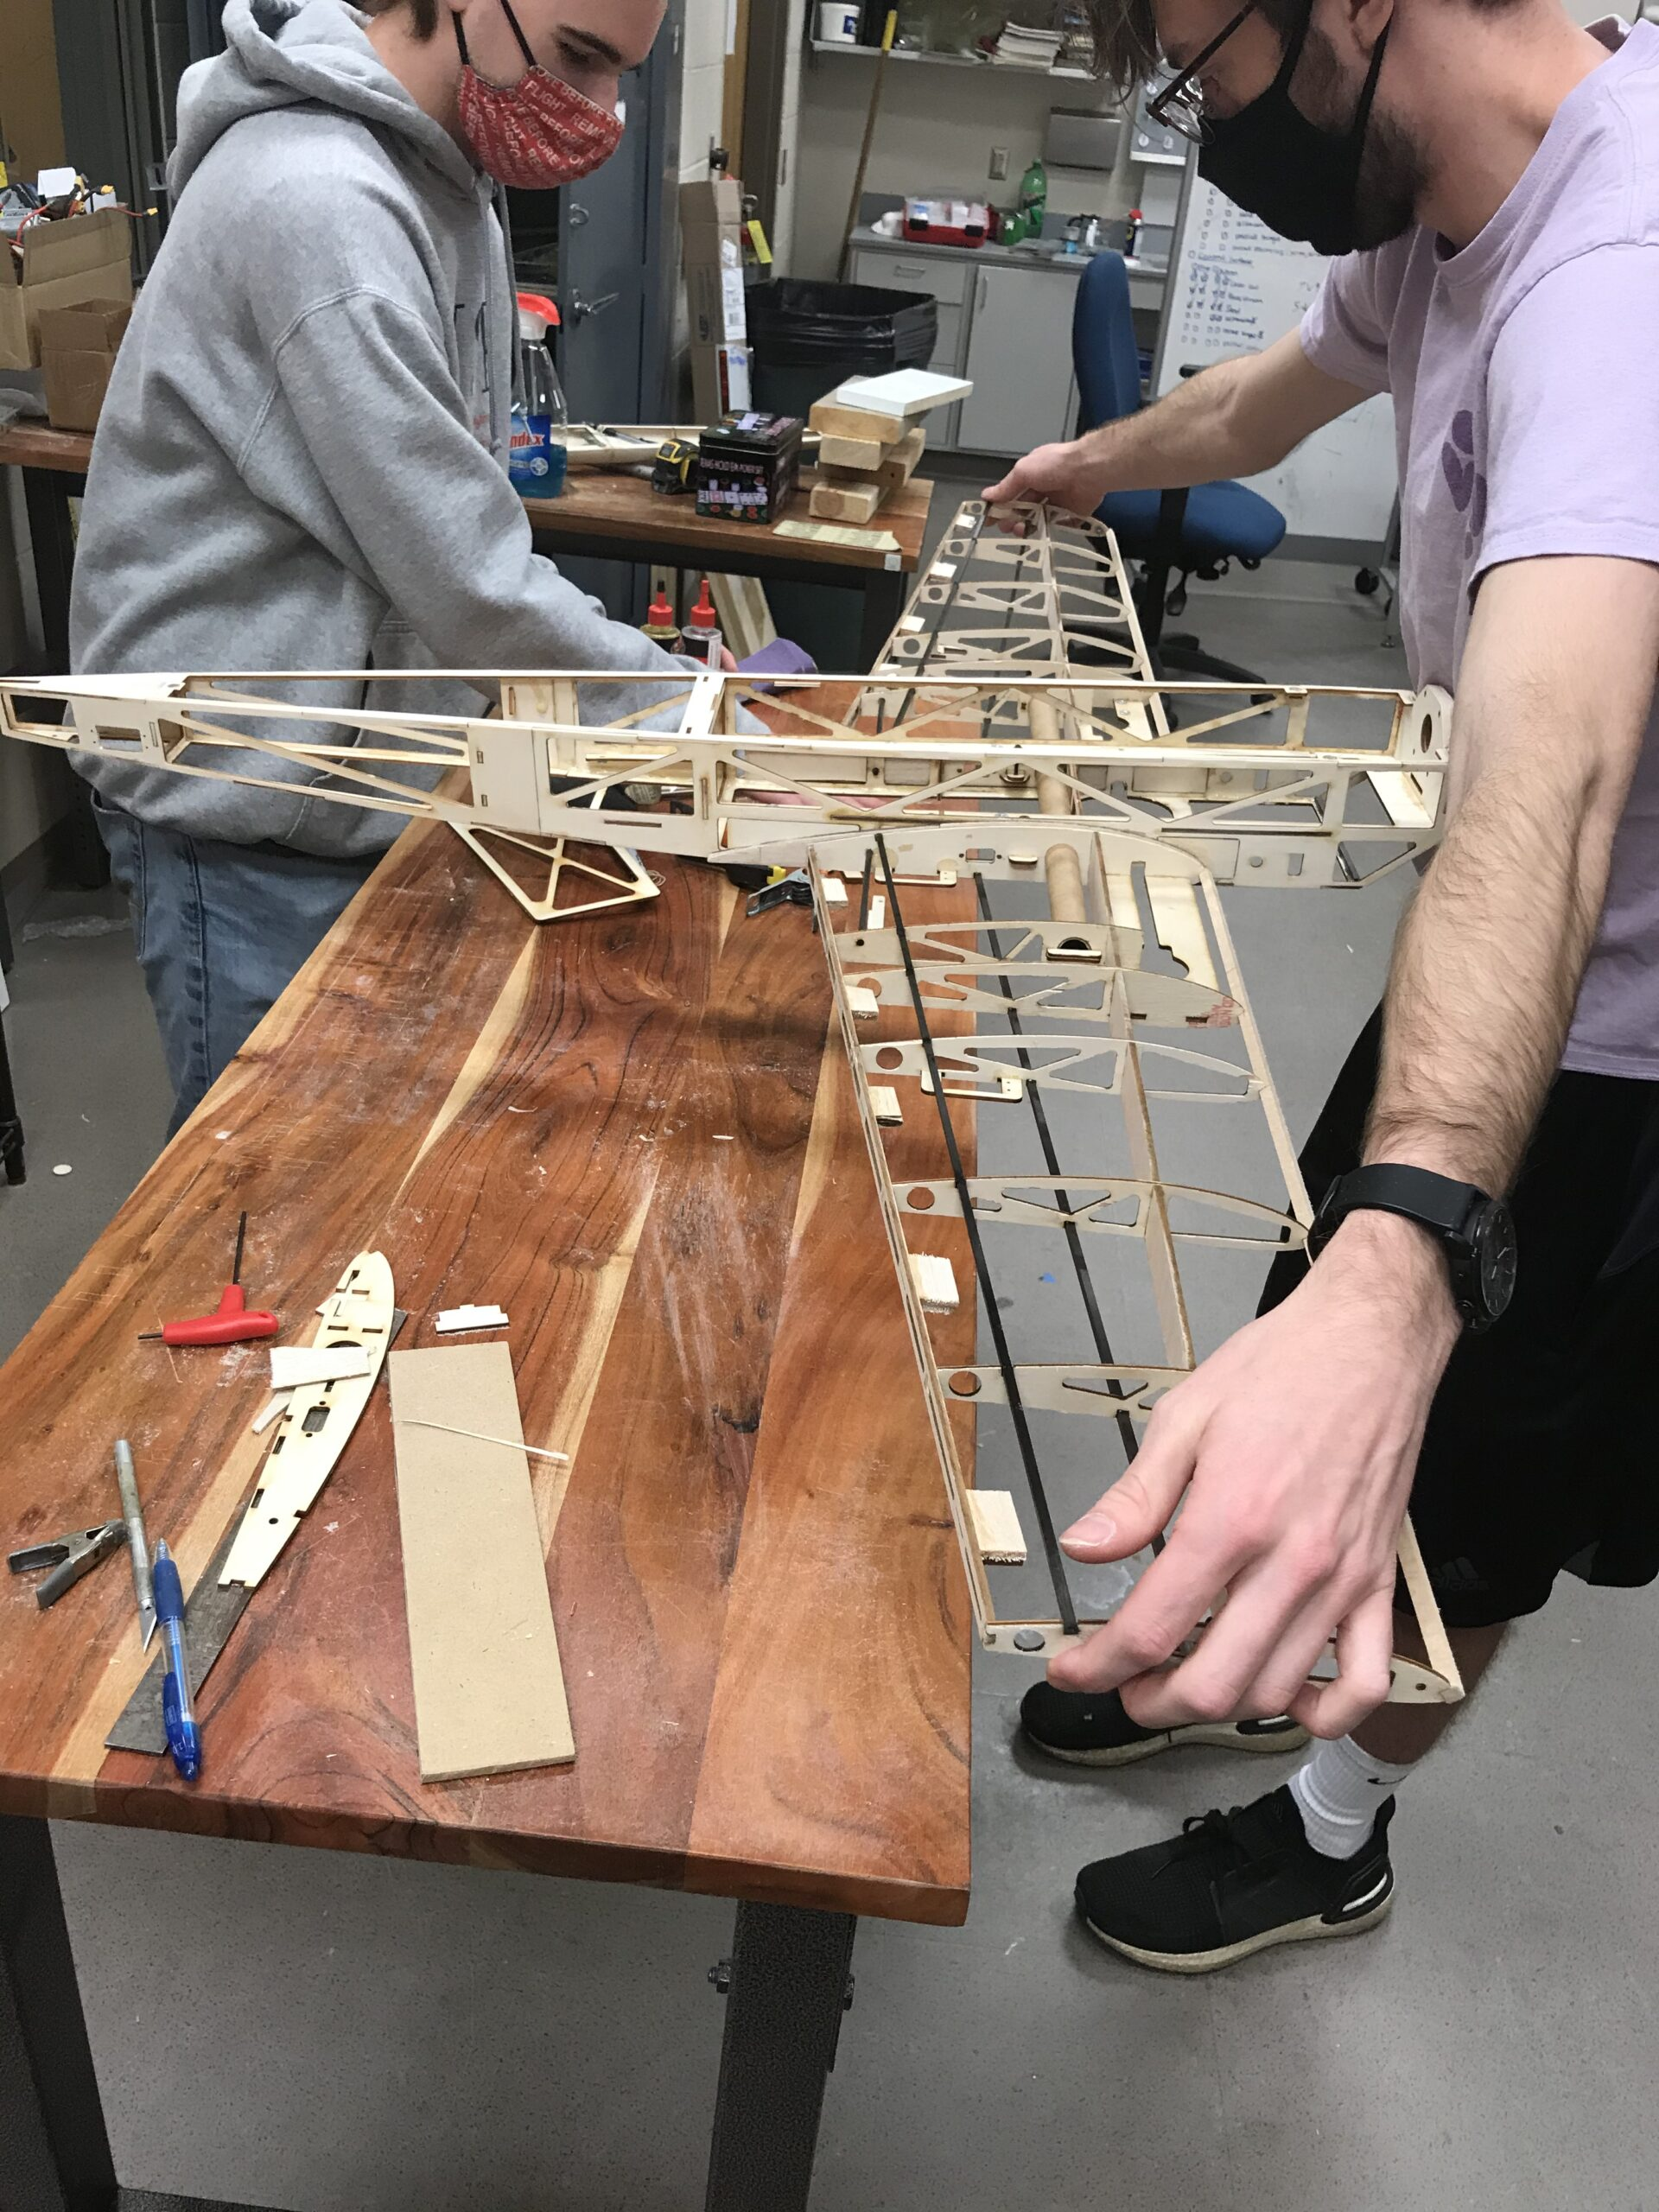 NC State AIAA team members construct the frame of their remote-controlled flyer, Airwolf, built for the 2021 AIAA Design, Build, Fly competition.